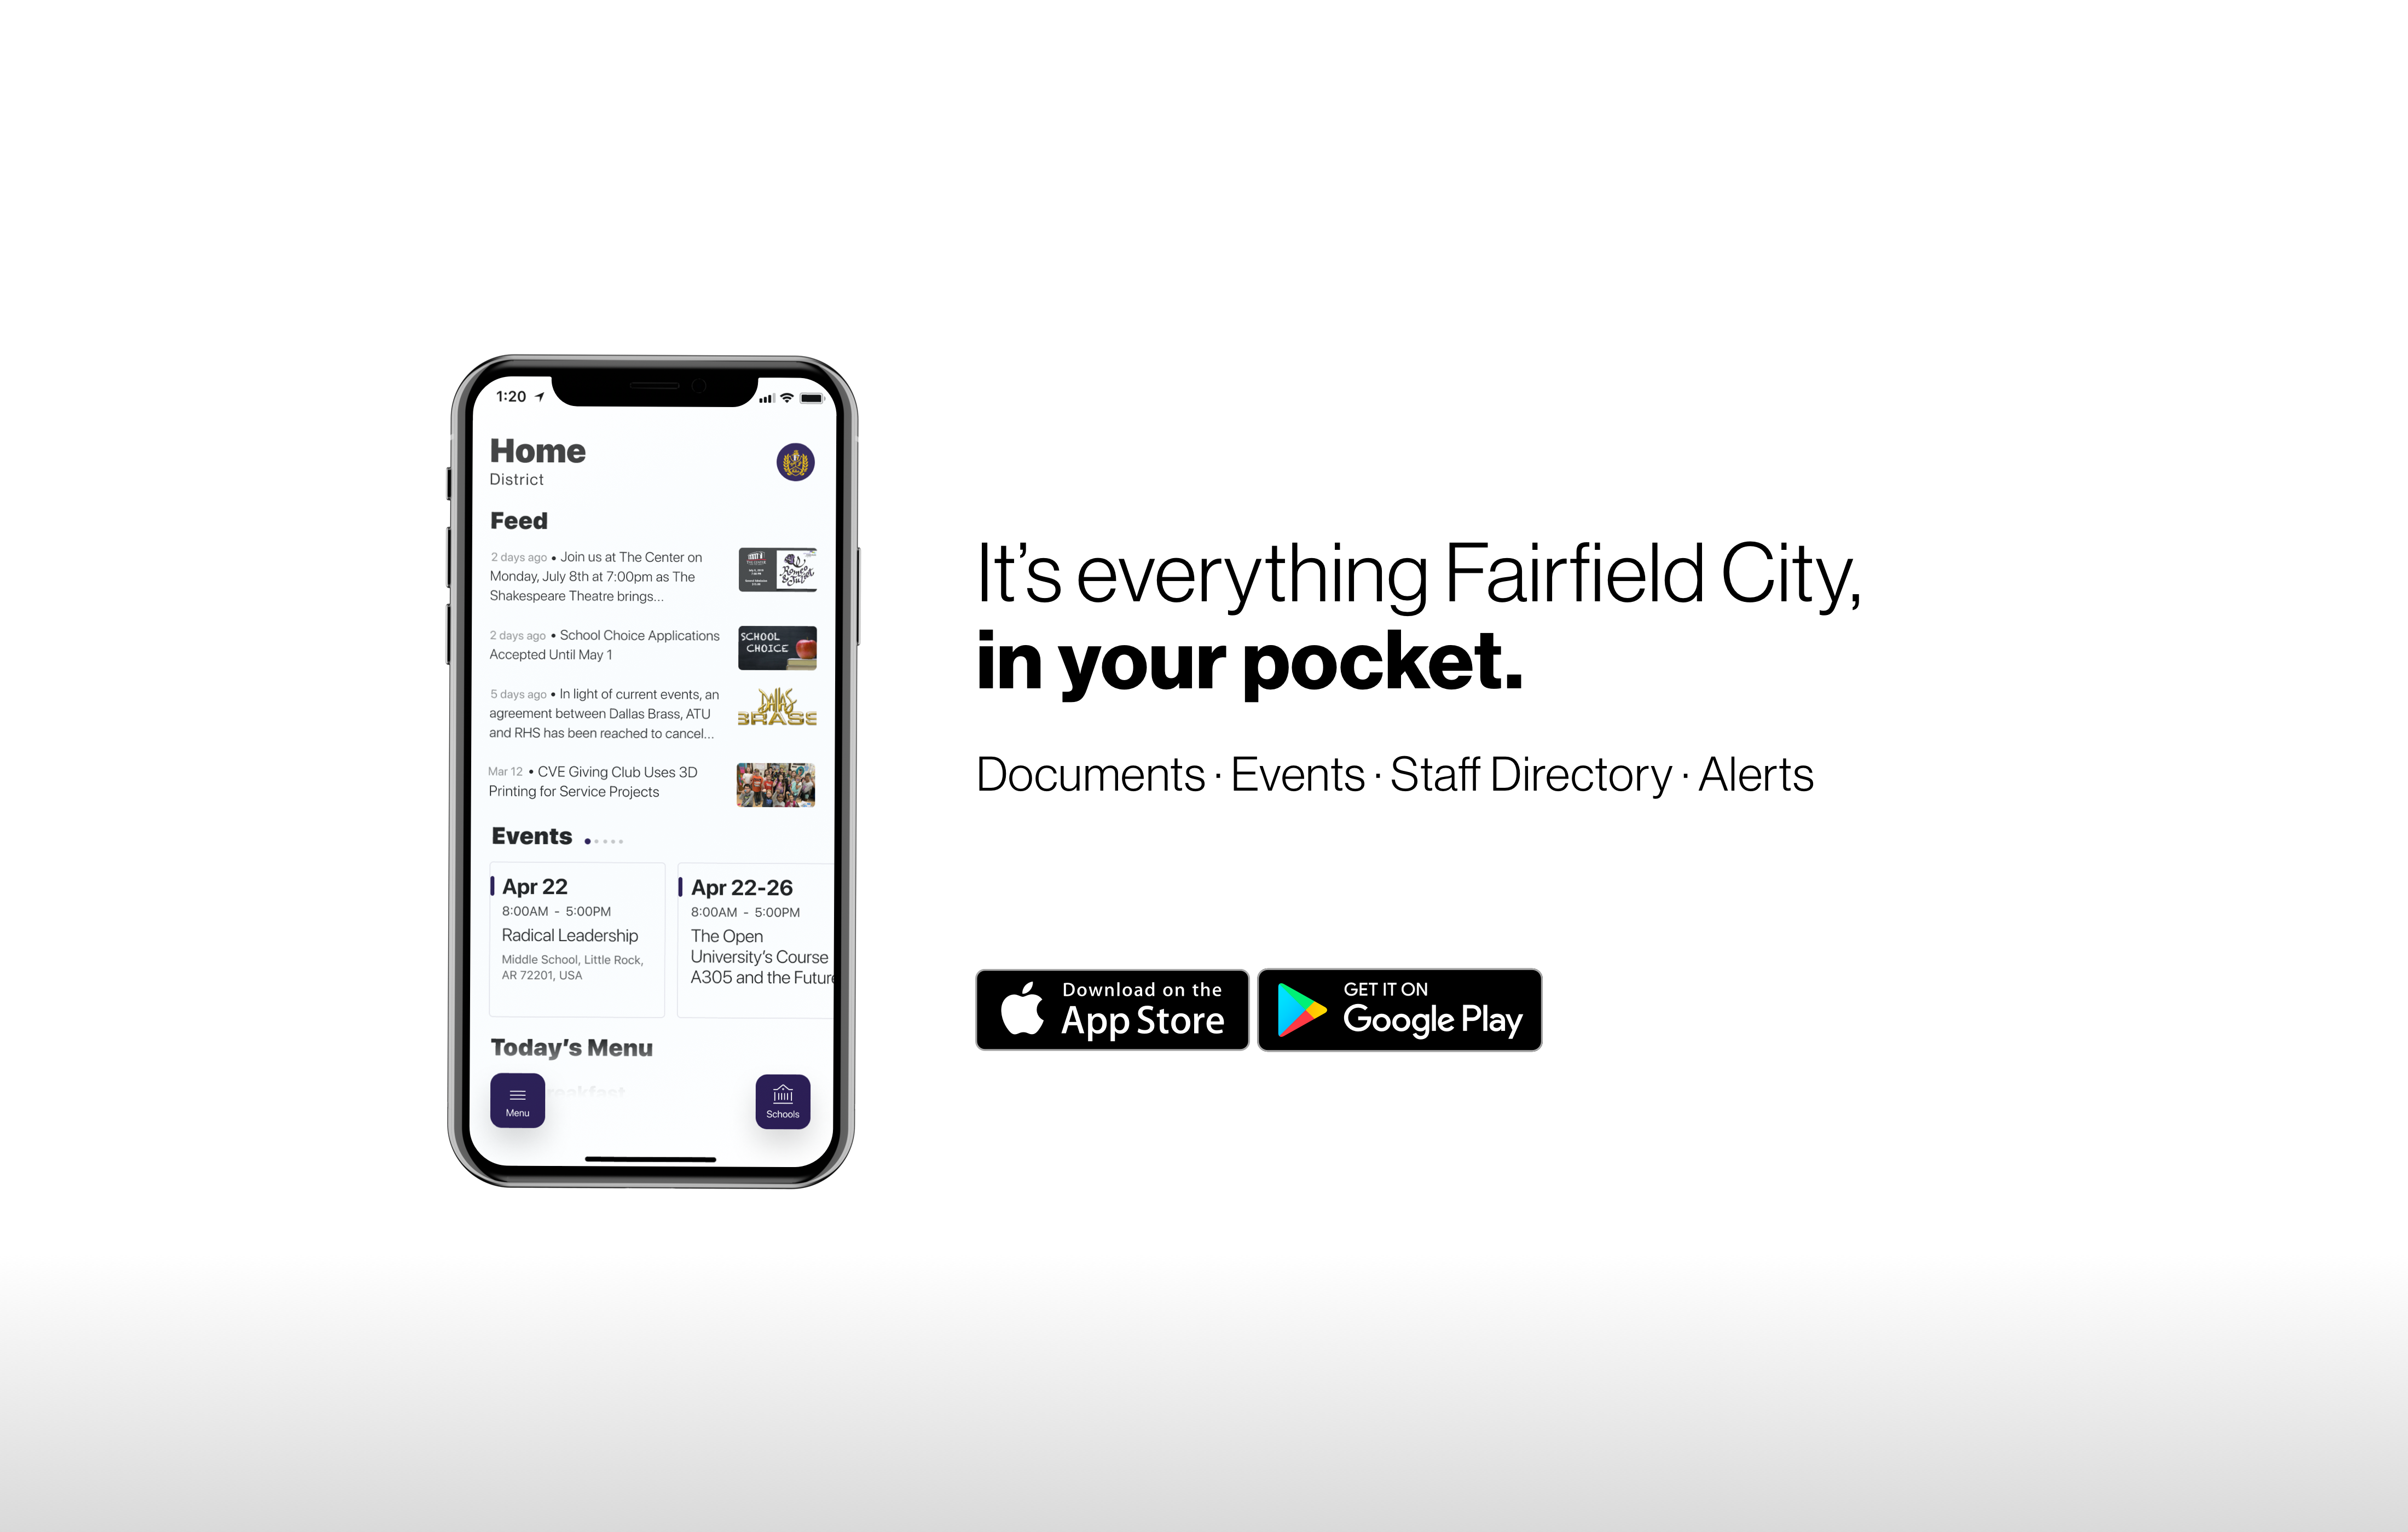 it's everything fairfield city, in your pocket